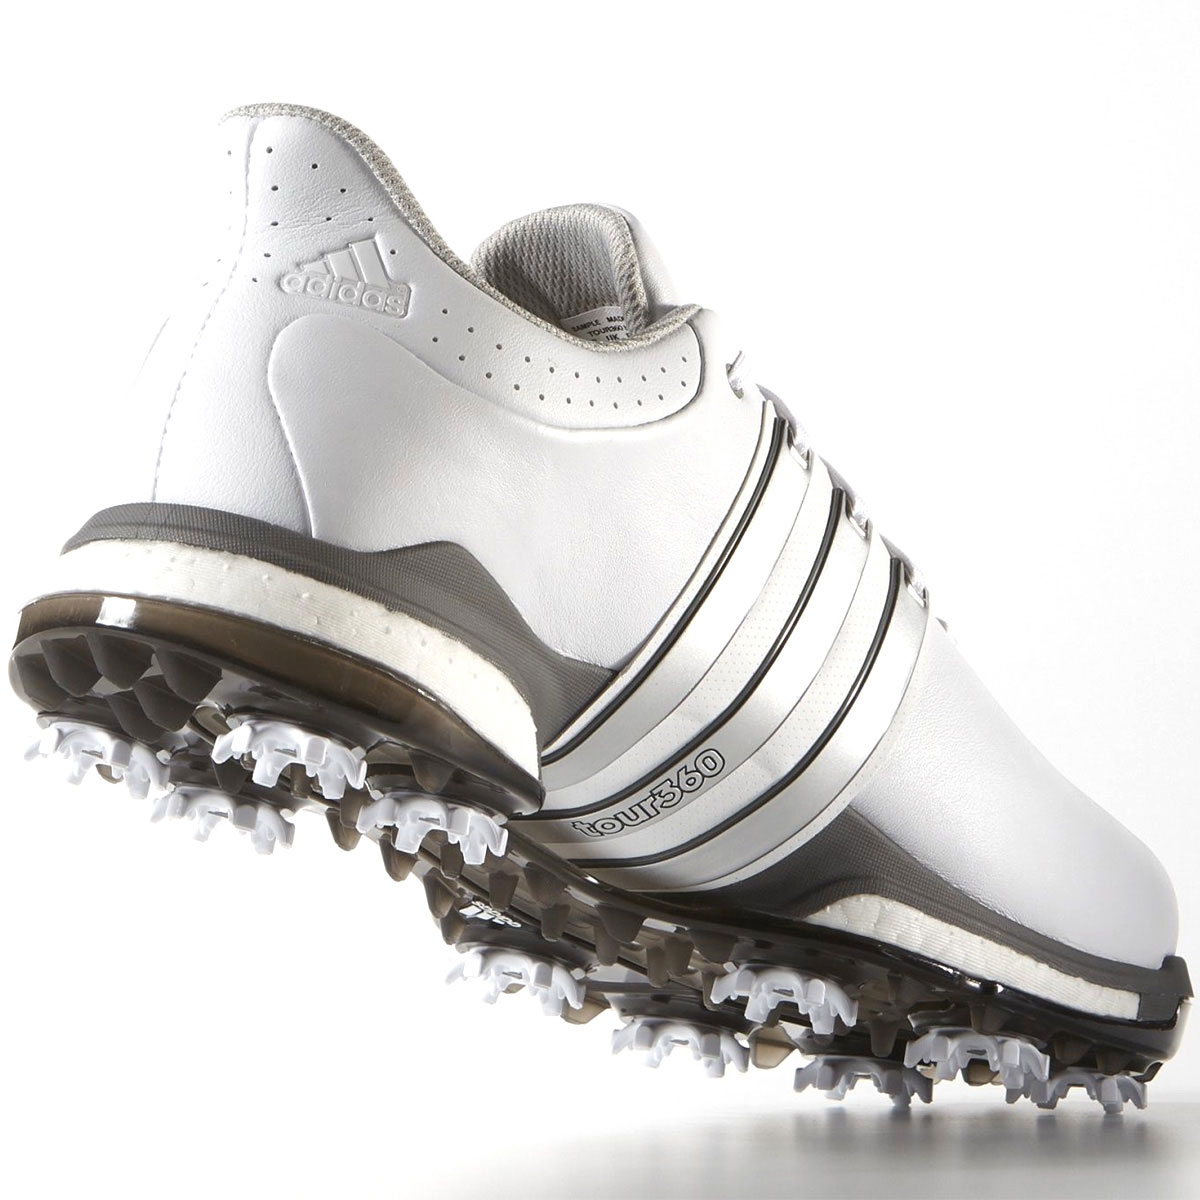 Adidas Tour  Boost Golf Shoes